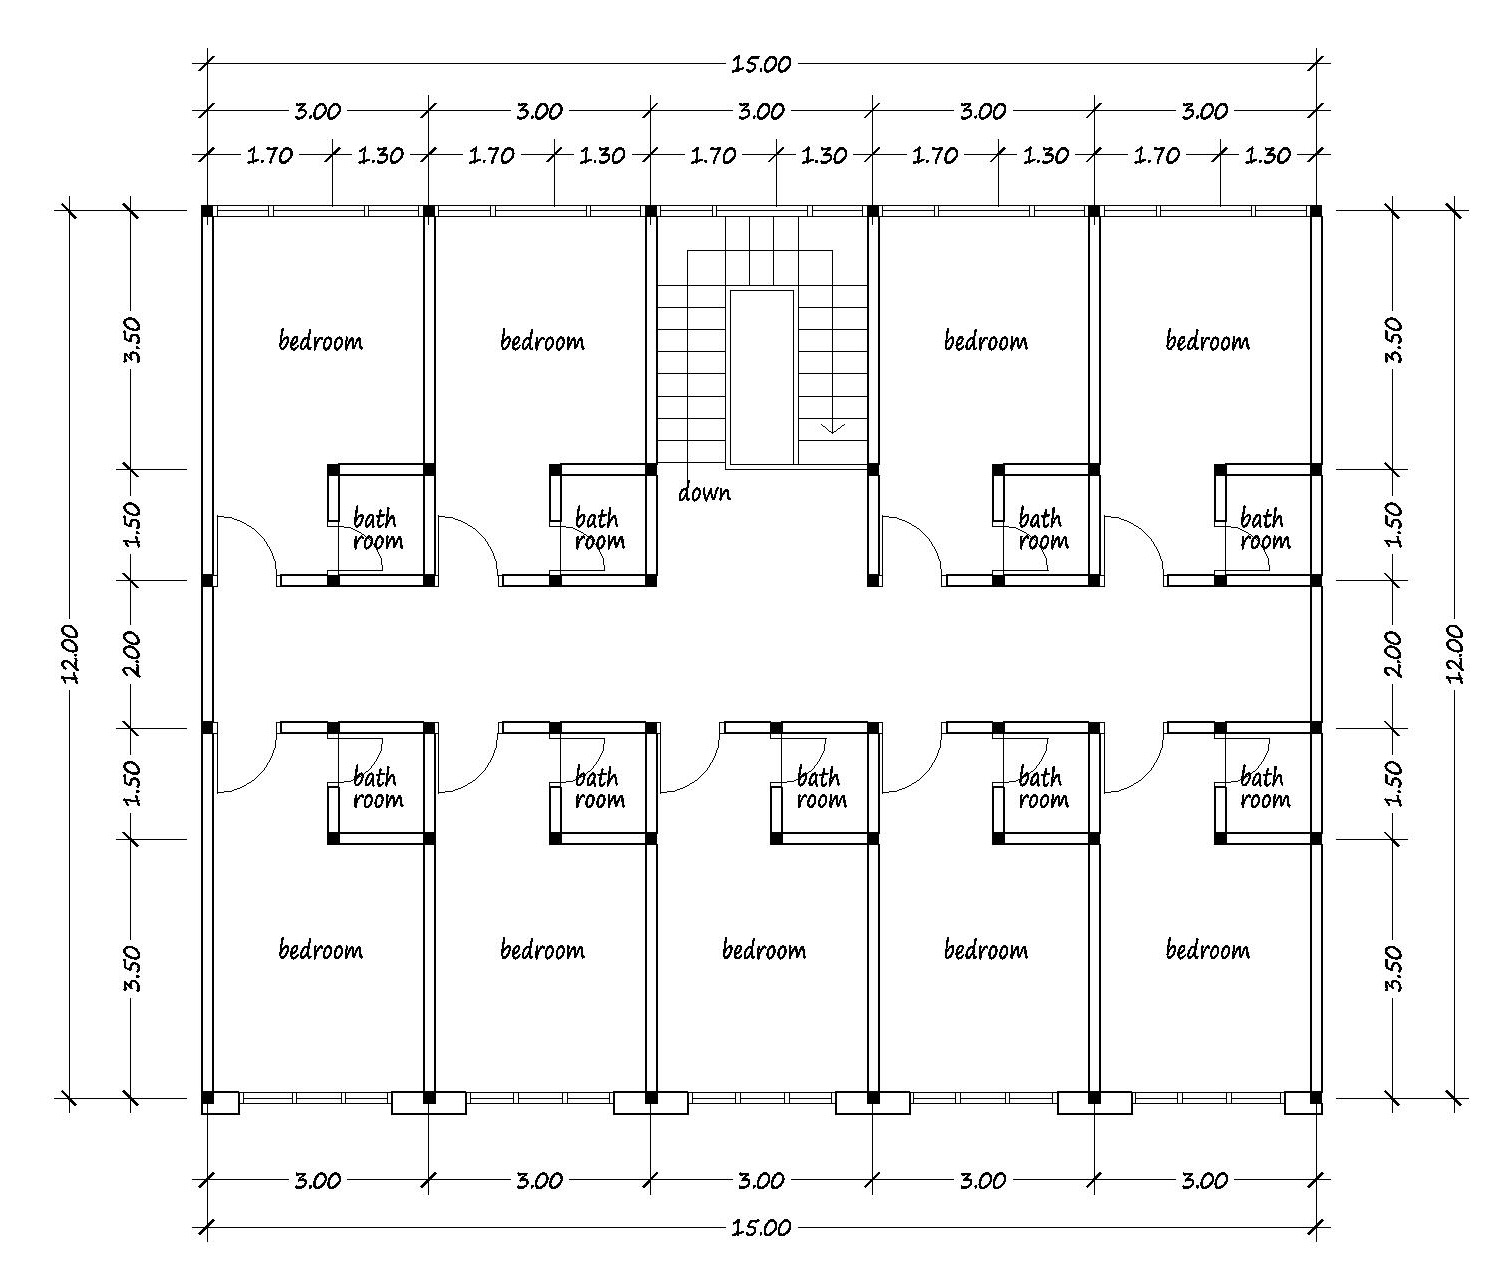 House plans for you plans image design and about house for Blueprint home plans